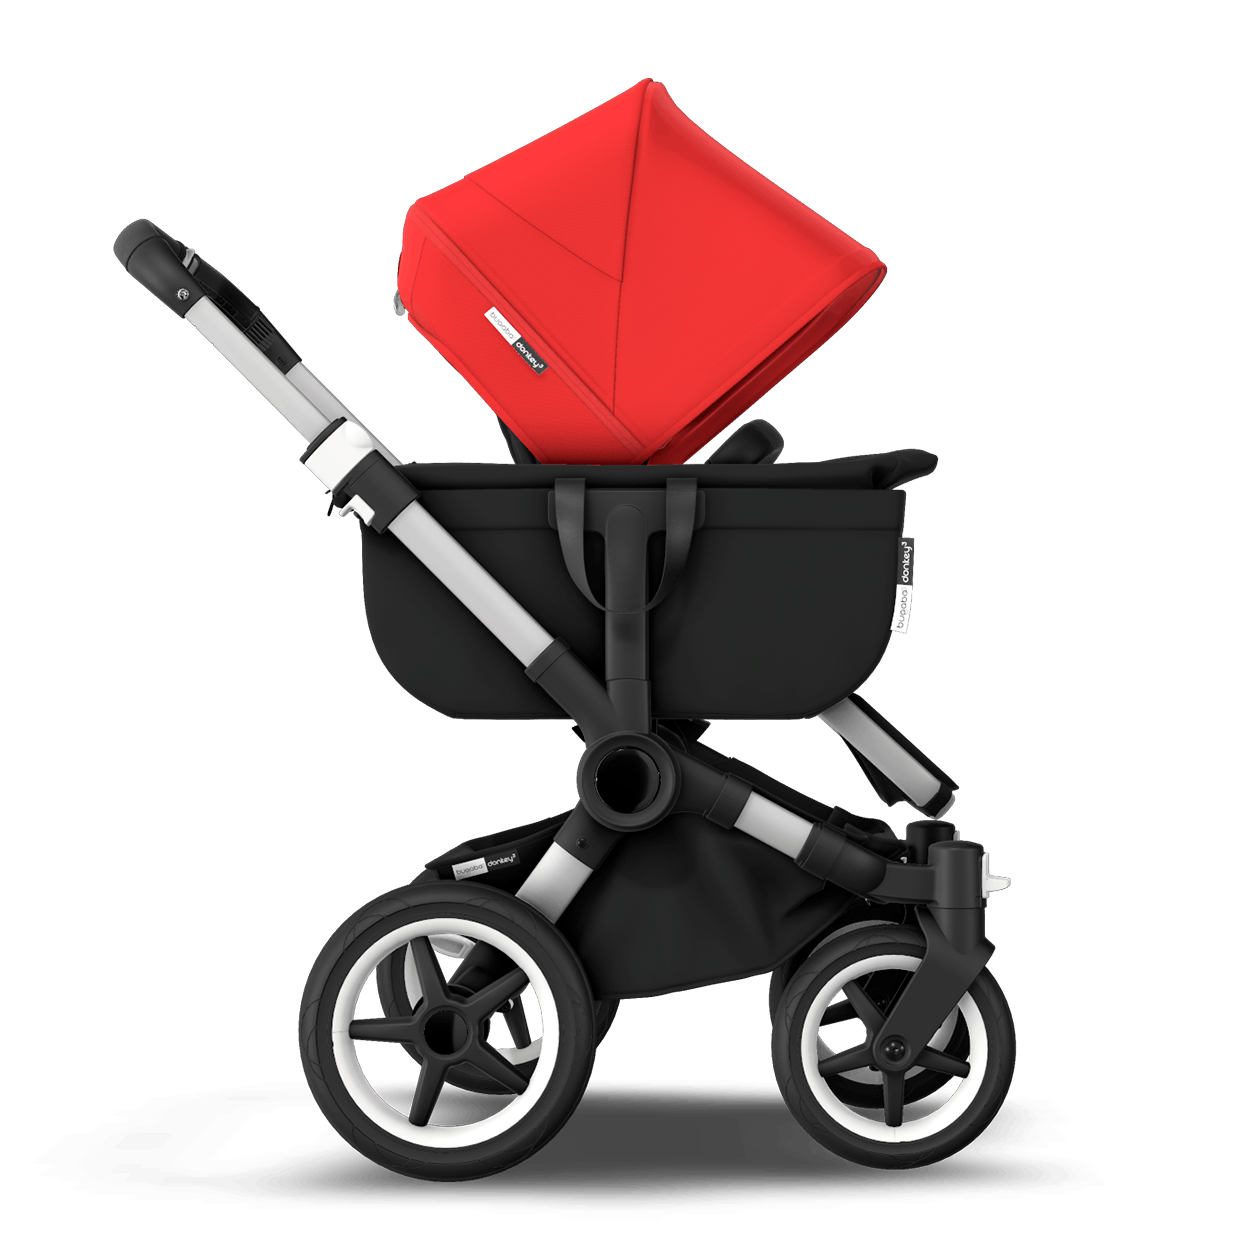 Bugaboo Donkey 3 Mono | Convertible strollers | Bugaboo.com